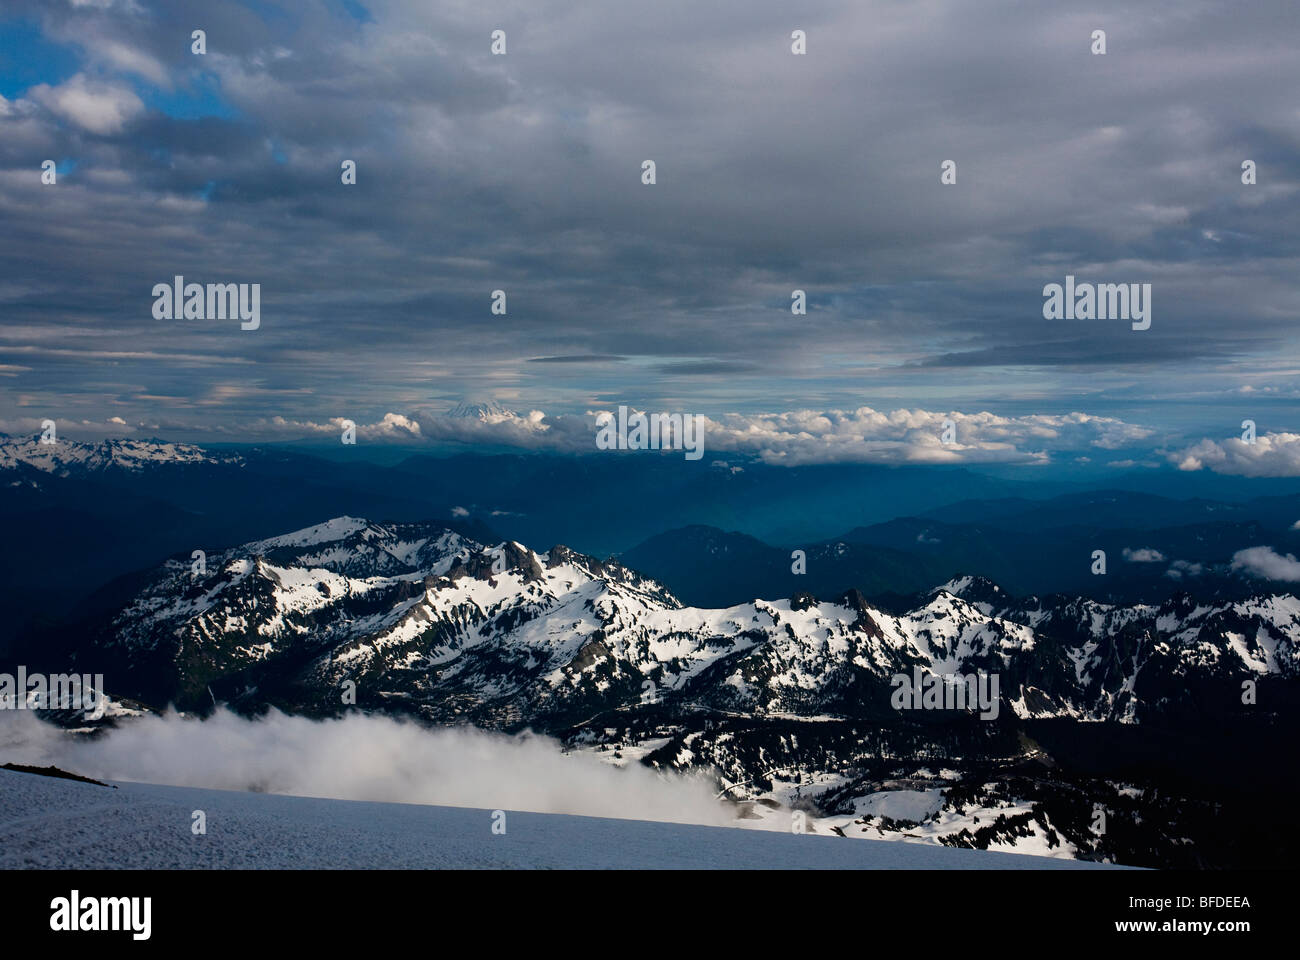 A landscape image of snow capped Mount Rainier in the Cascades at dusk. - Stock Image